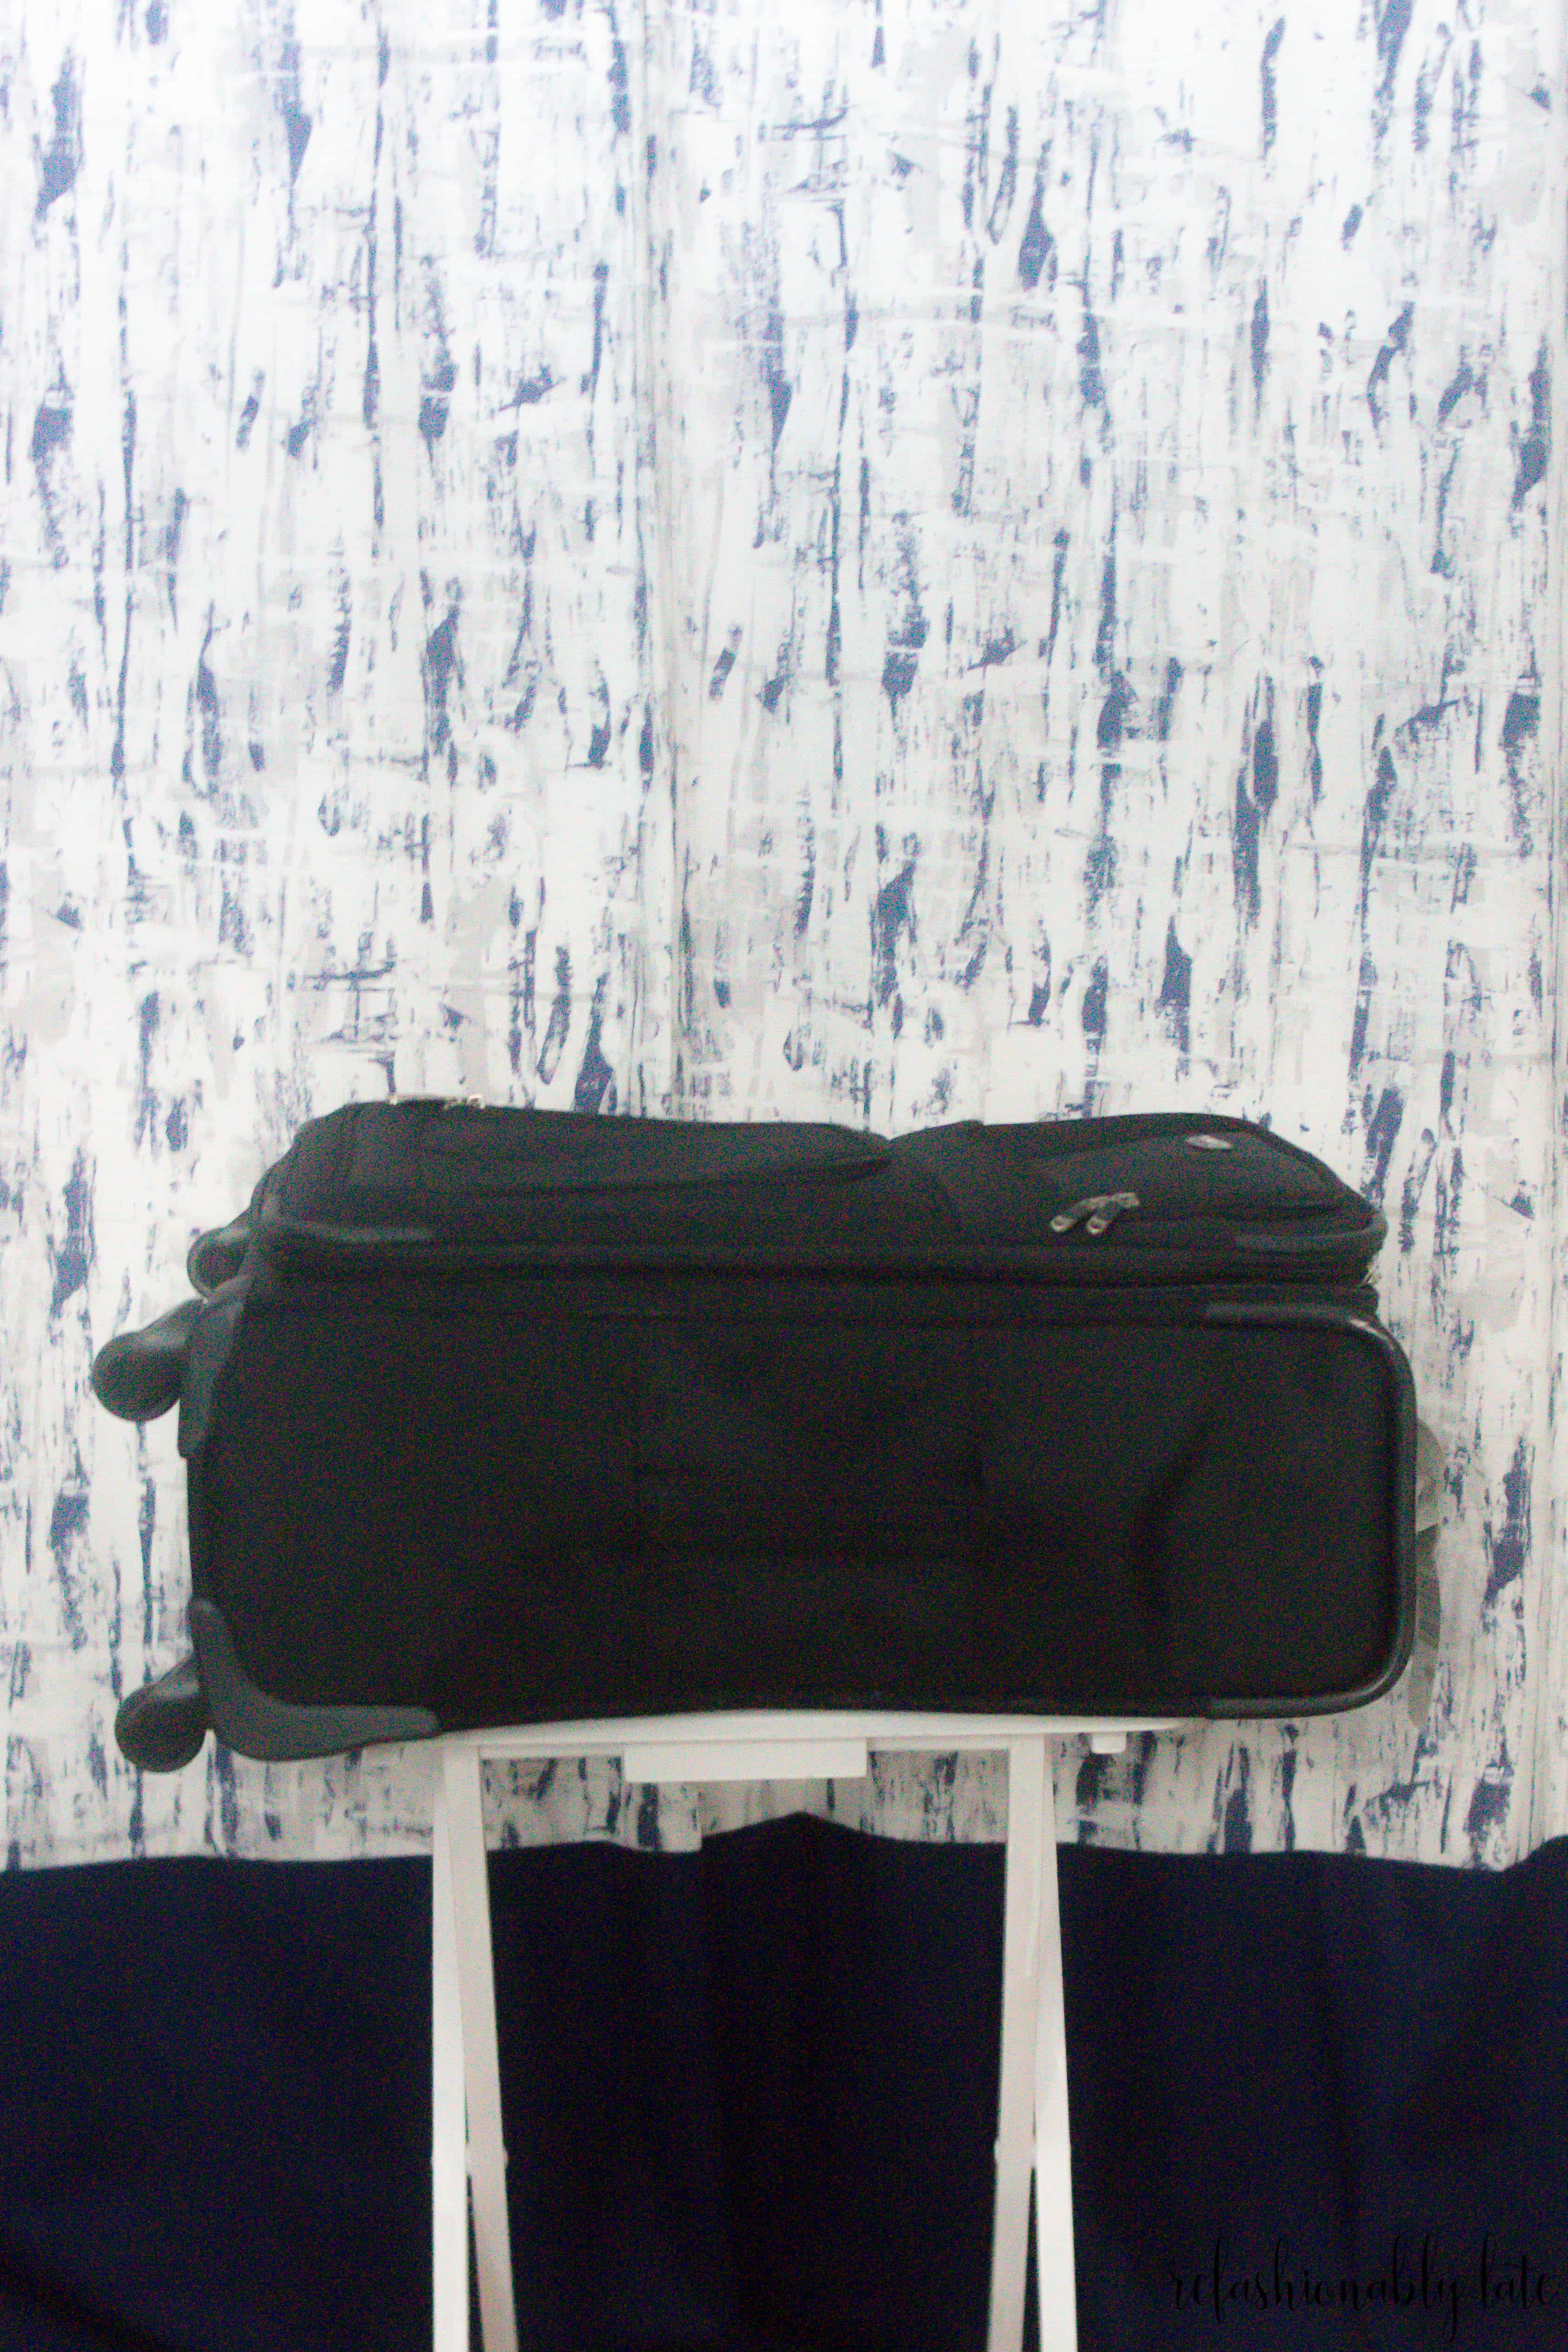 black suitcase on top of a DIY luggage rack with blue curtains behind it